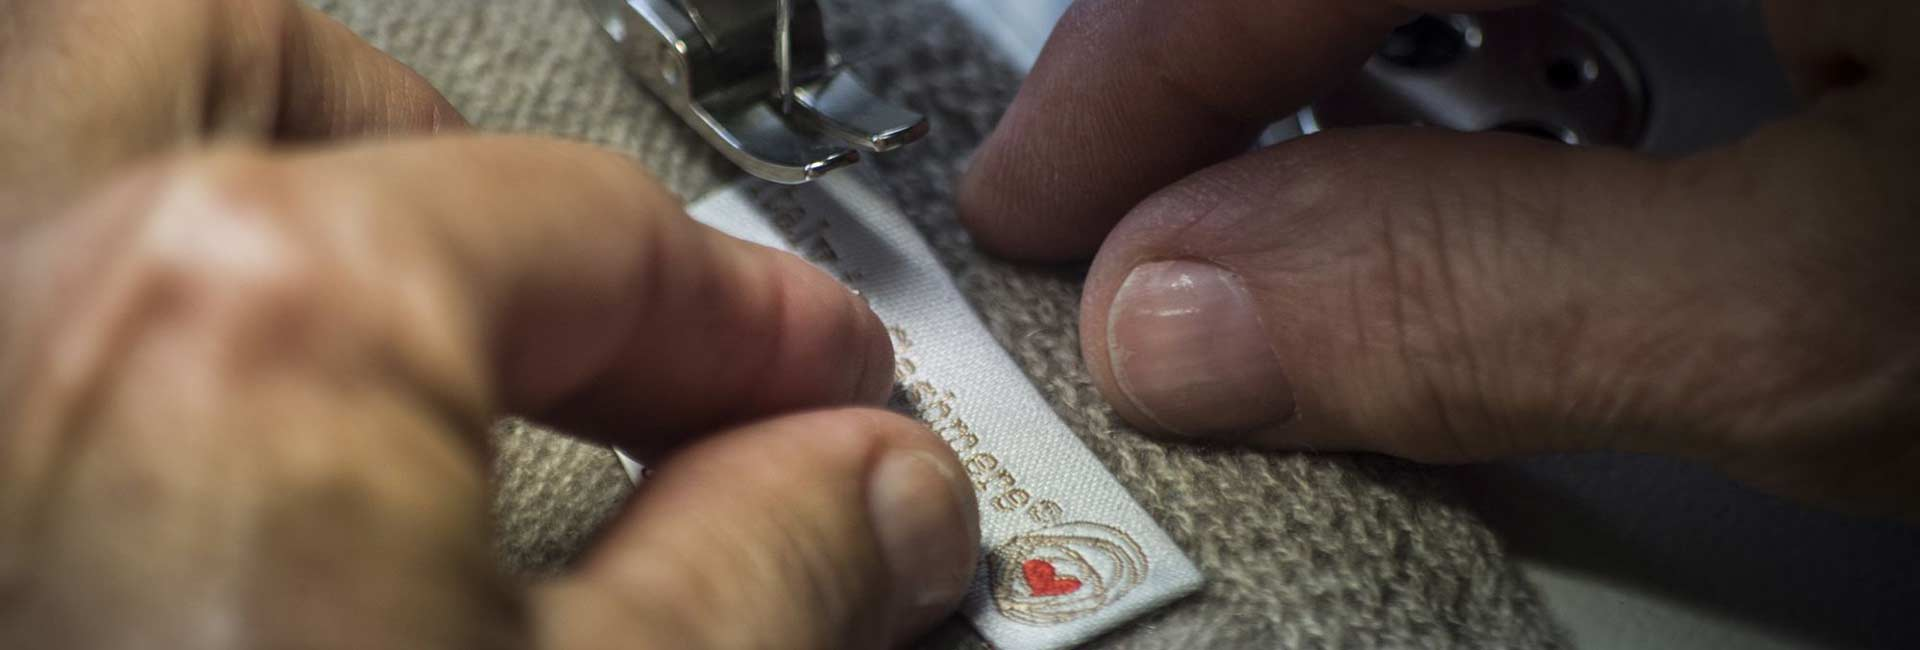 Woman's hands sewing Italy in Cashmere label